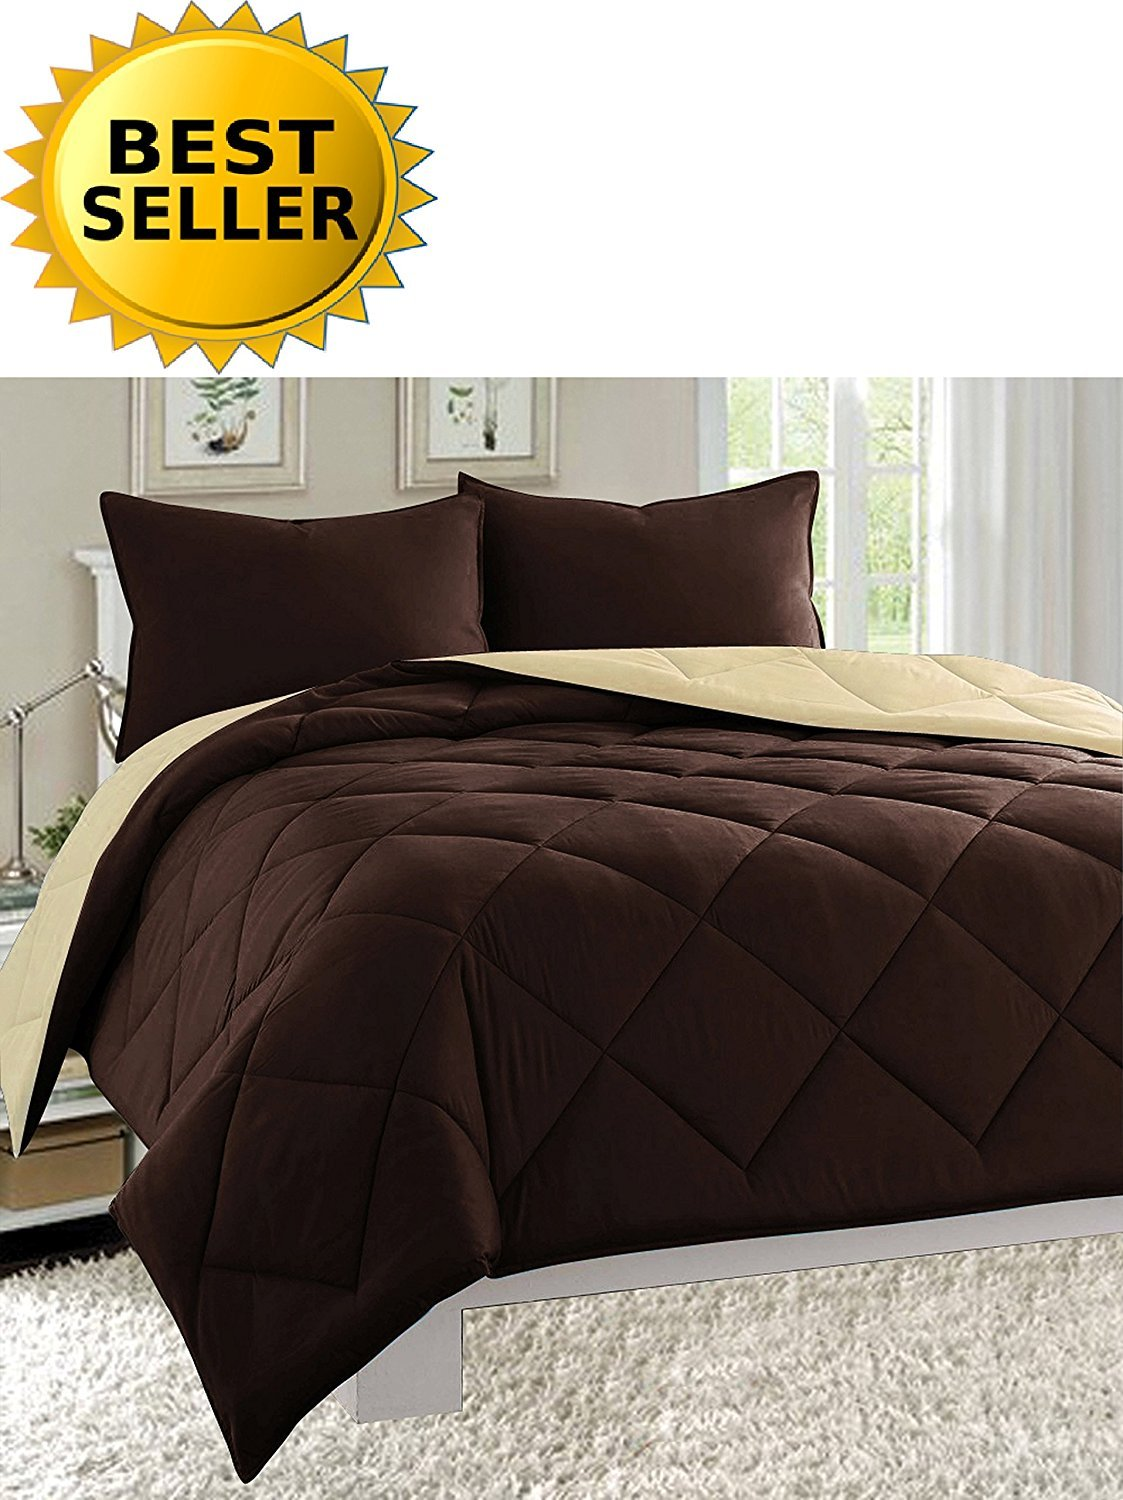 Celine Linen Luxury All Season Light Weight Down Alternative Reversible 2-Piece Comforter Set Chocolate Brown/Cream